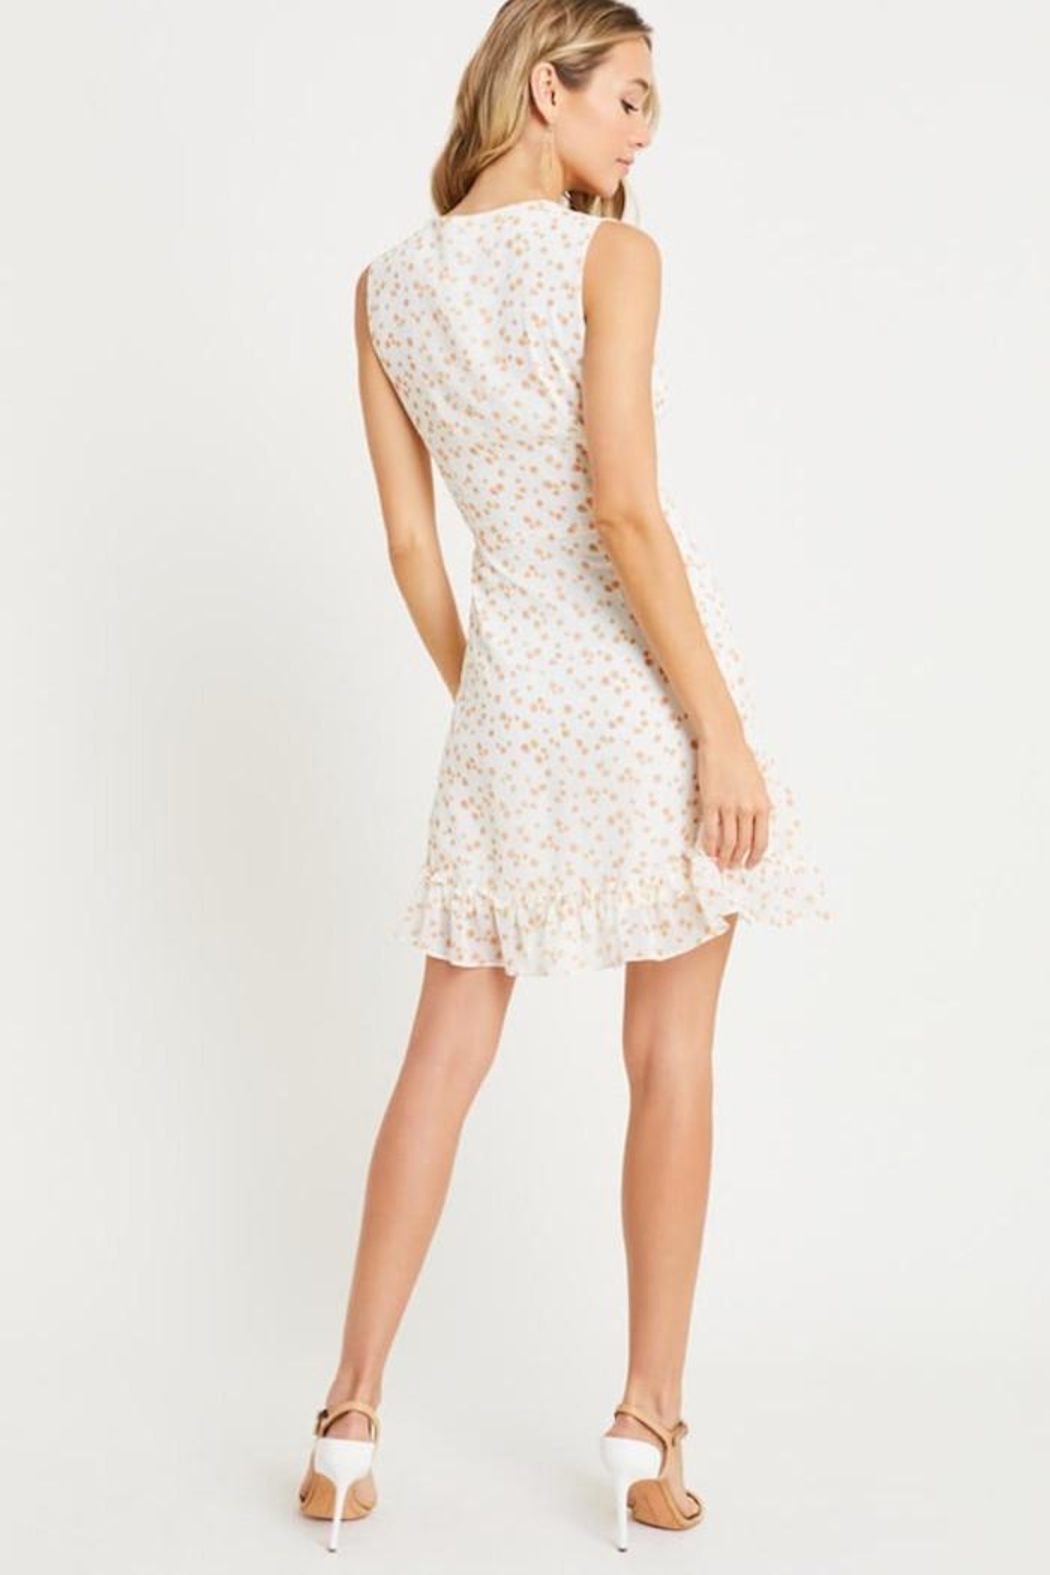 Lush May Flowers Dress - Side Cropped Image